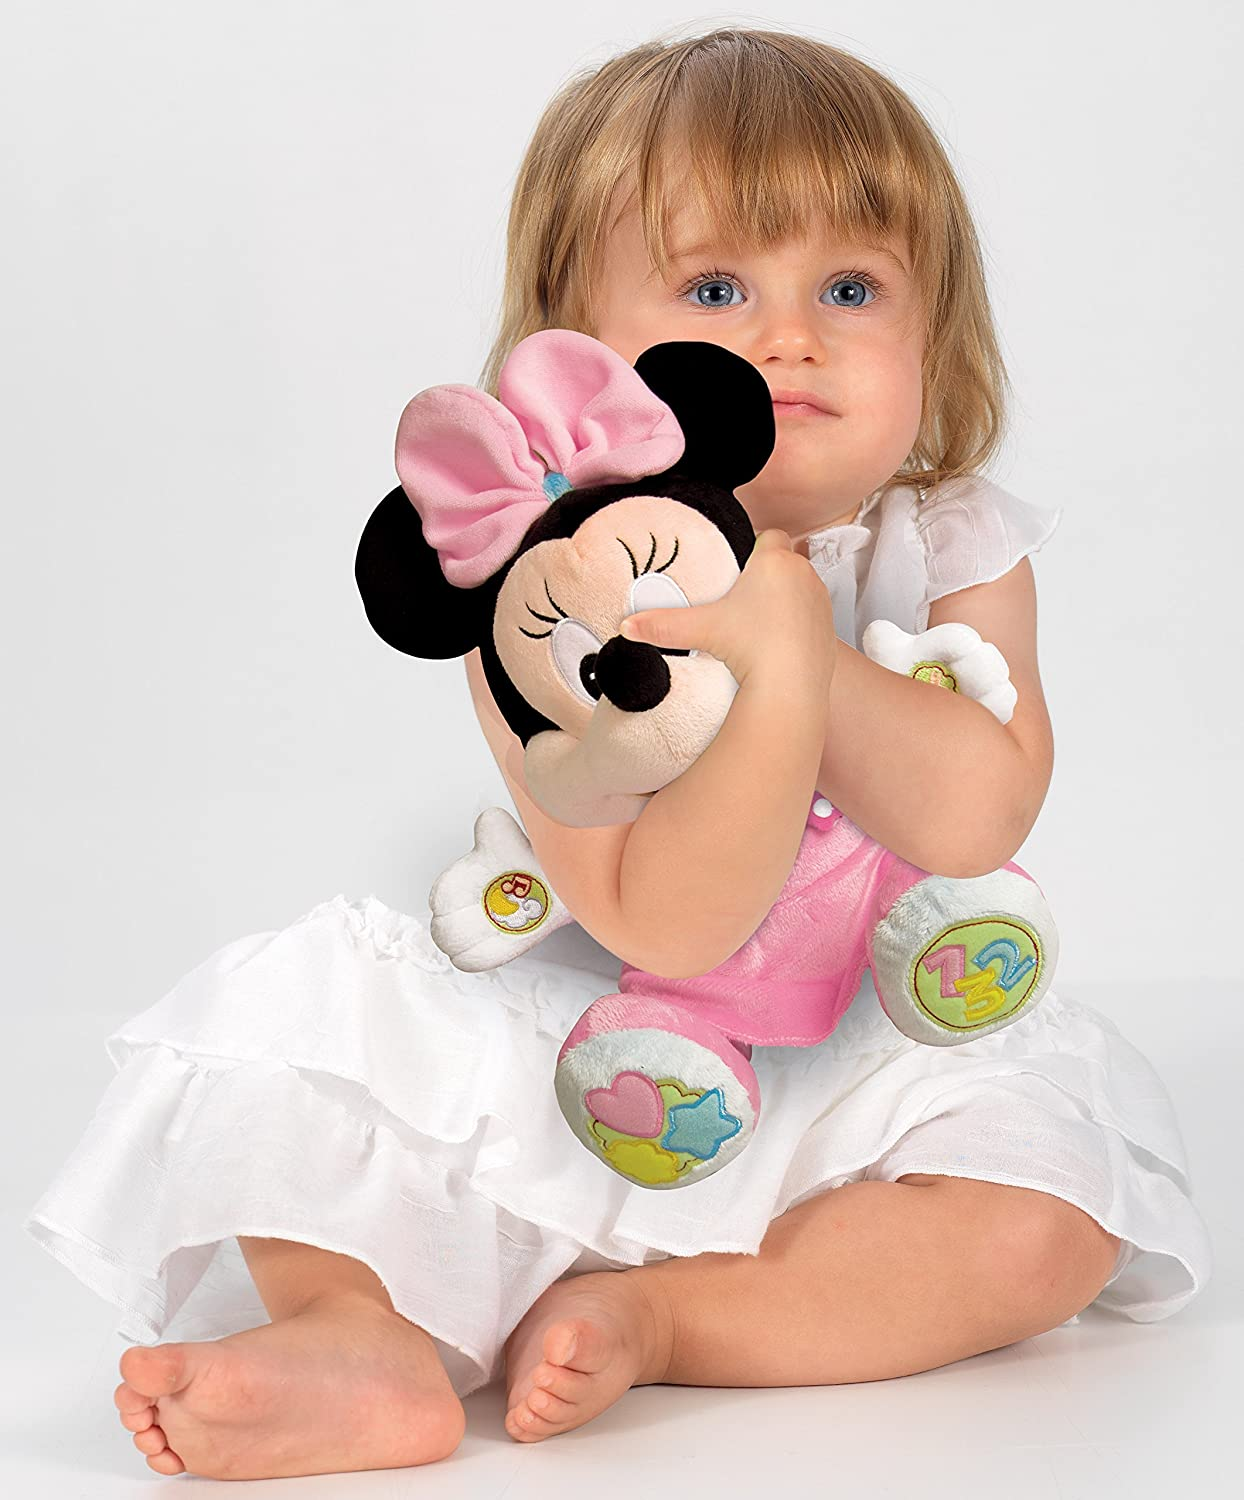 Amazon.com: GAMES & TOYS Juega y aprende con Baby Minnie, Peluche educativo: Home & Kitchen